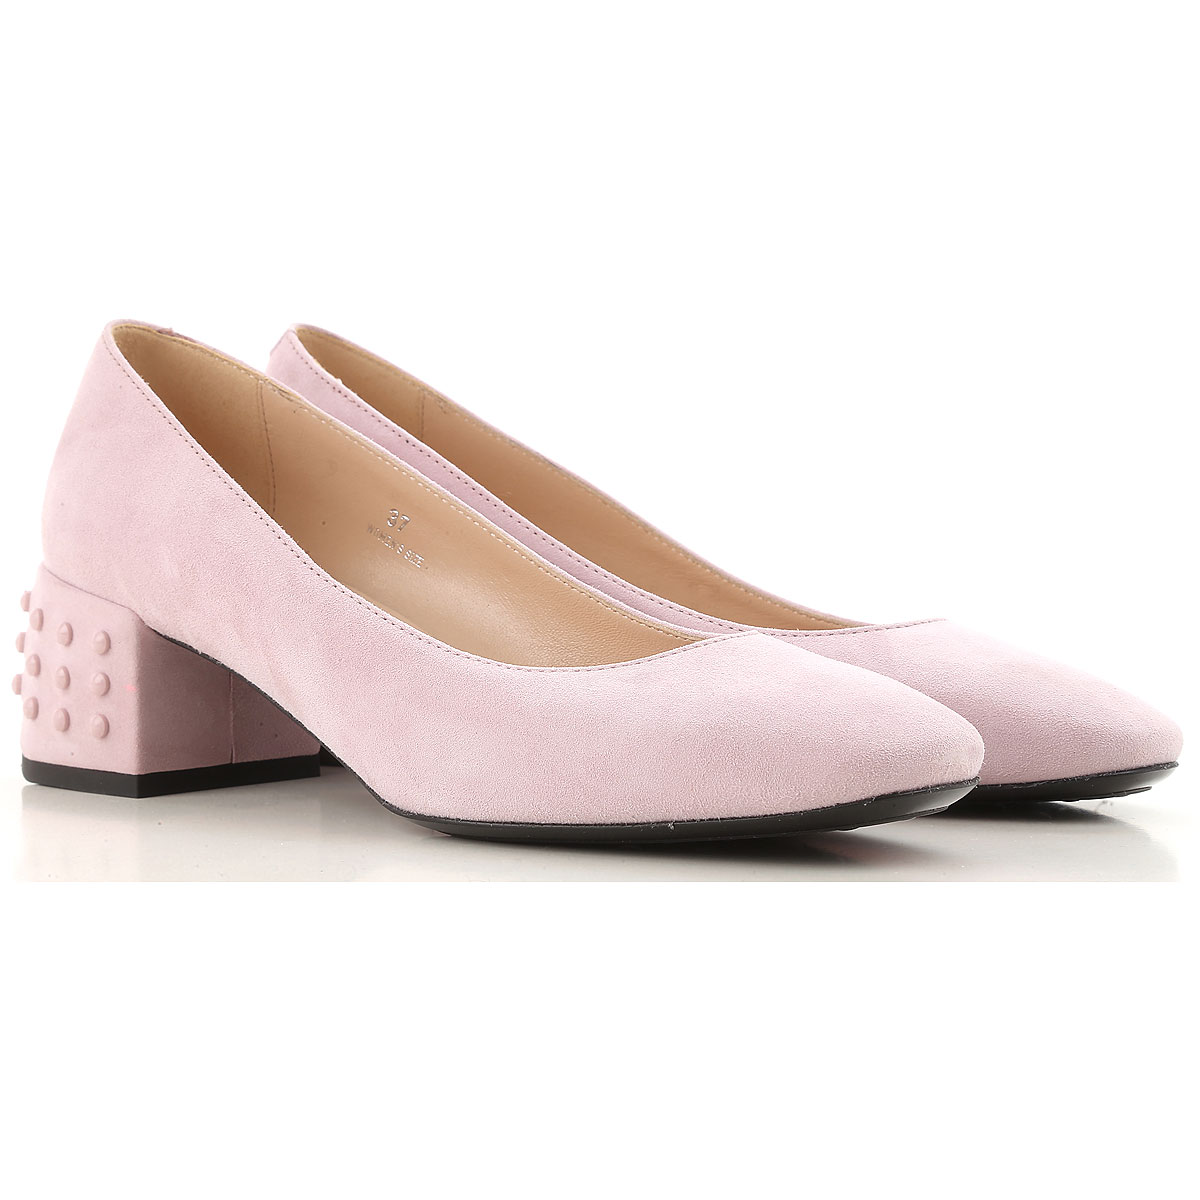 Tods Pumps & High Heels for Women Powder Pink USA - GOOFASH